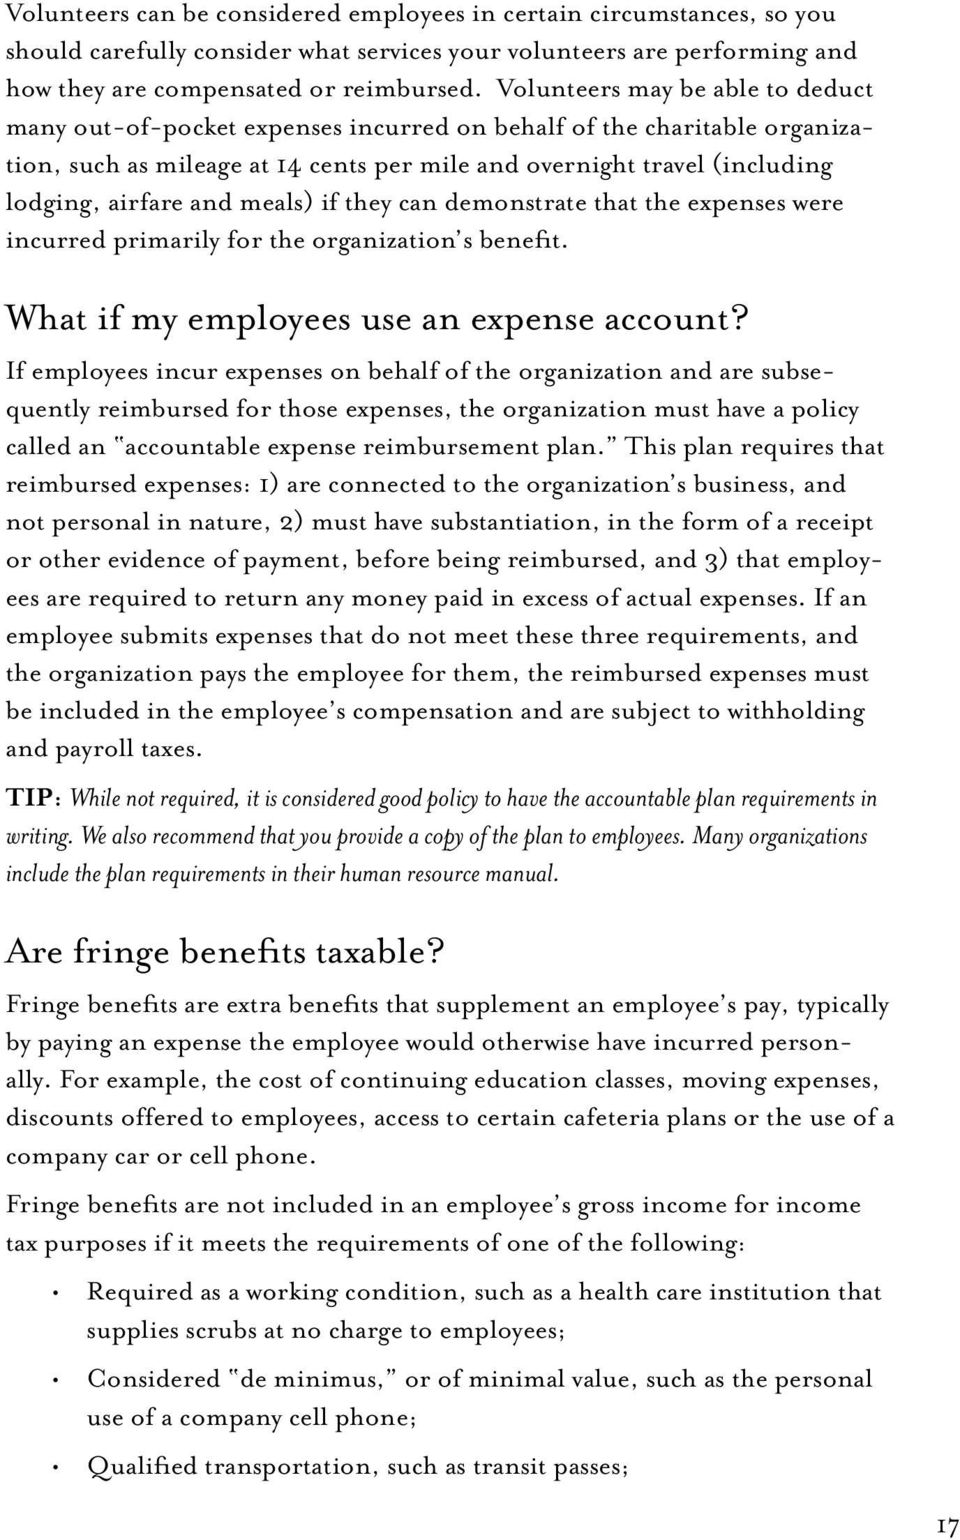 and meals) if they can demonstrate that the expenses were incurred primarily for the organization s benefit. What if my employees use an expense account?